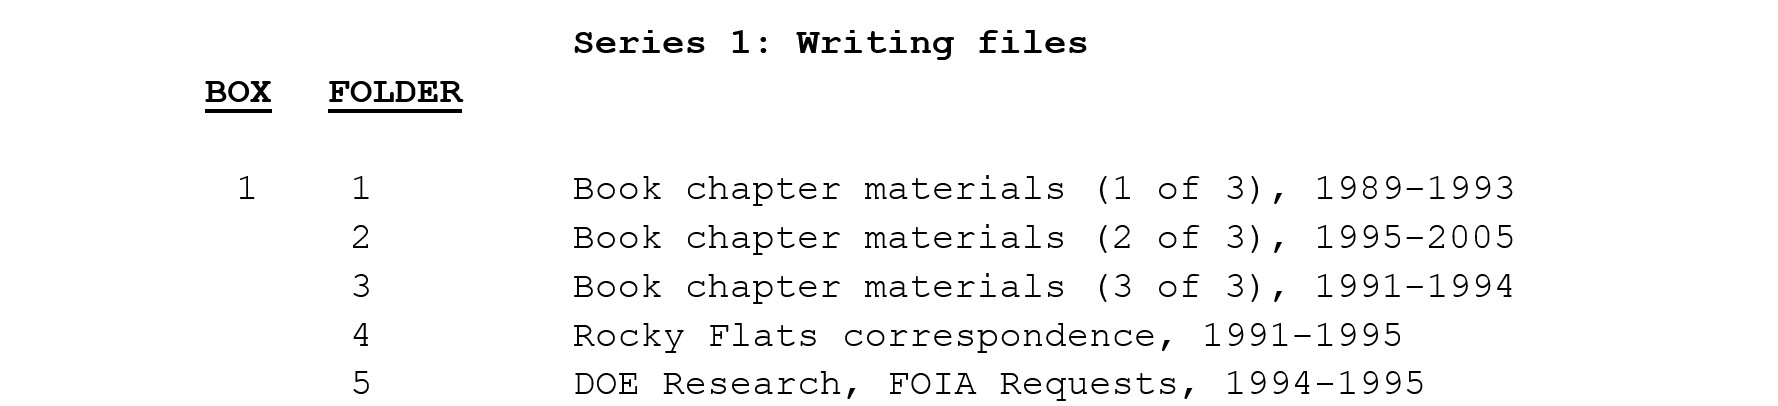 """Page of finding aid, reading """"Series 1: Writing files""""; """"Box 1, Folder 1: Book chapter materials (1 of 3)""""; """"Box 1, Folder 2: Book chapter materials (2 of 3)""""; """"Box 1, Folder 3: Book chapter materials (3 of 3)""""; Box 1, Folder 4: Rocky Flats correspondence, 1991-1995"""" ; """"Box 1, Folder 5: DOE Research, FOIA Requests, 1994-1995"""""""